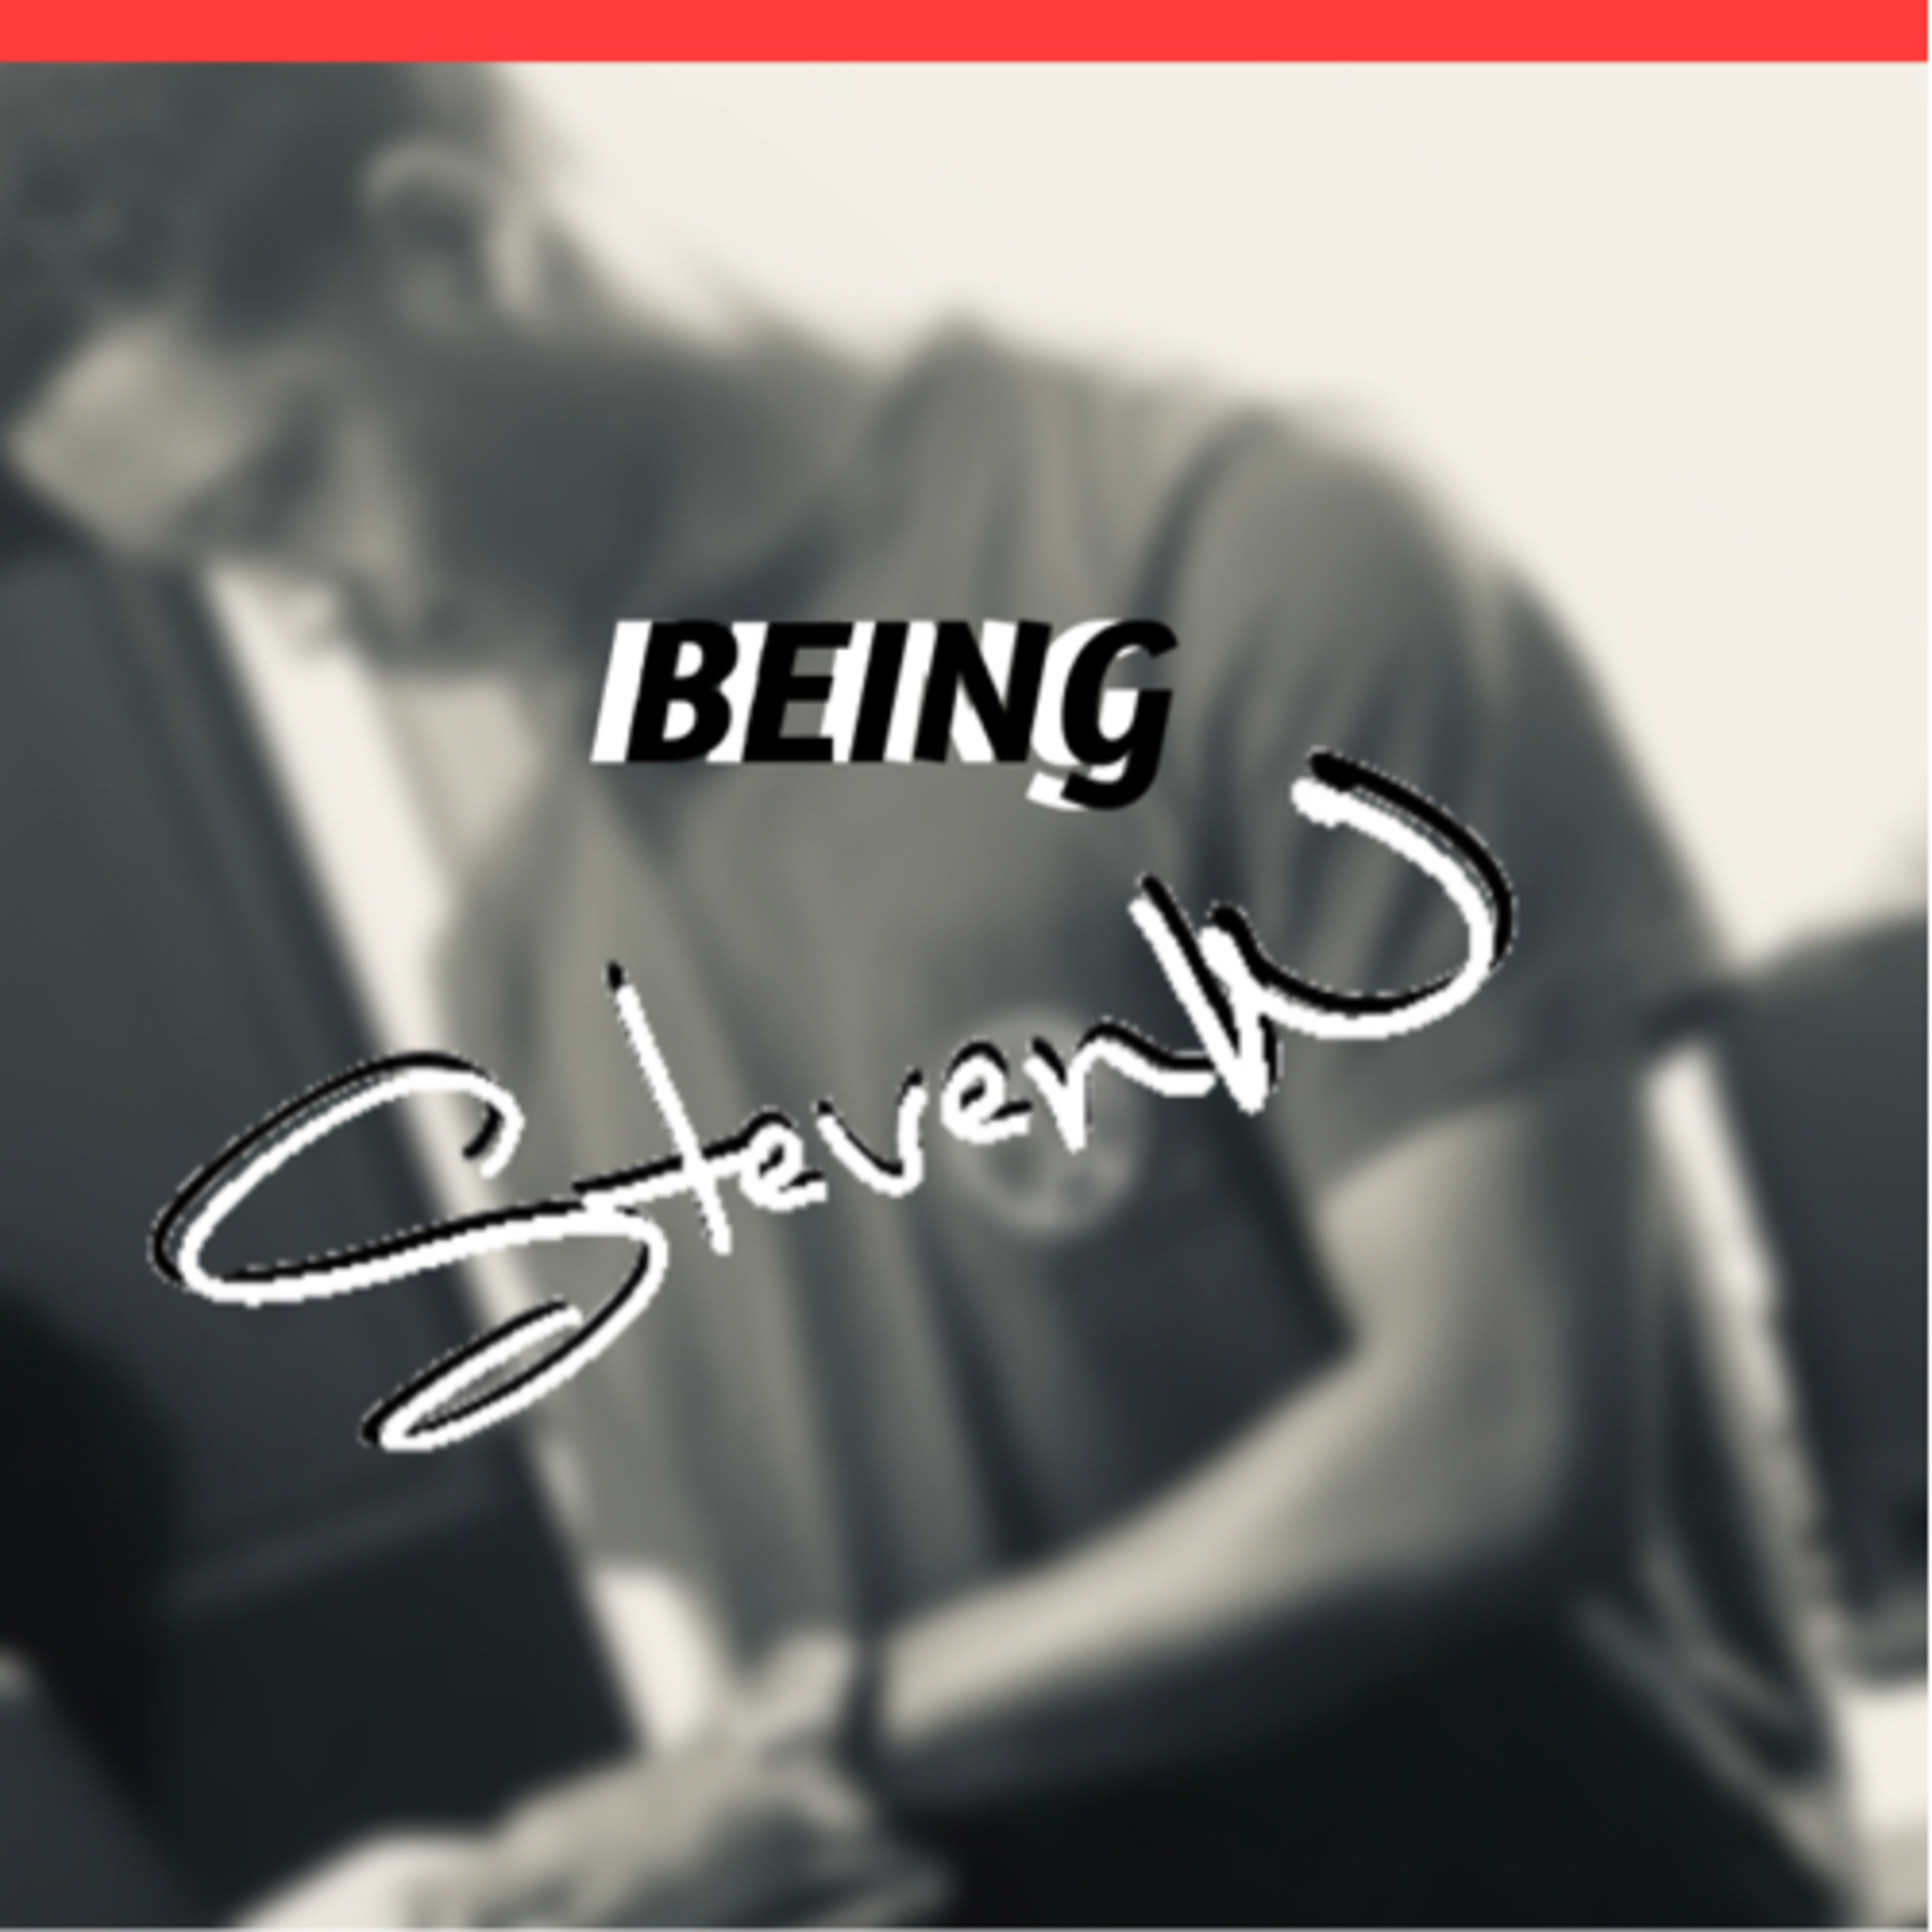 Ep. 1 Welcome To Being Steveee